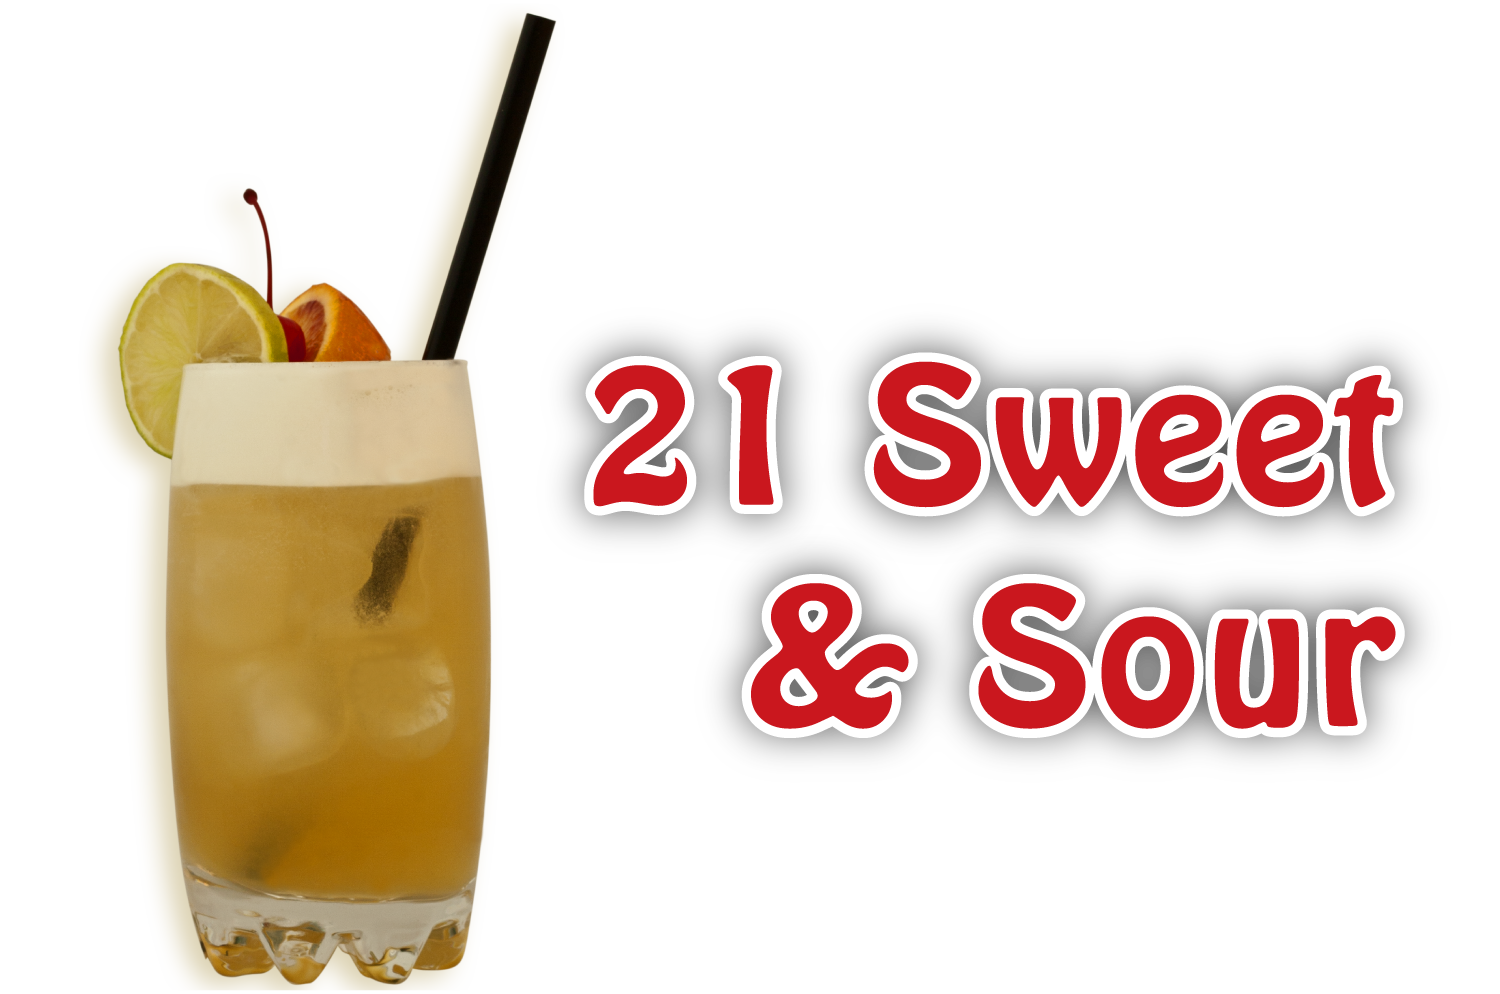 21-Sweet&Sour